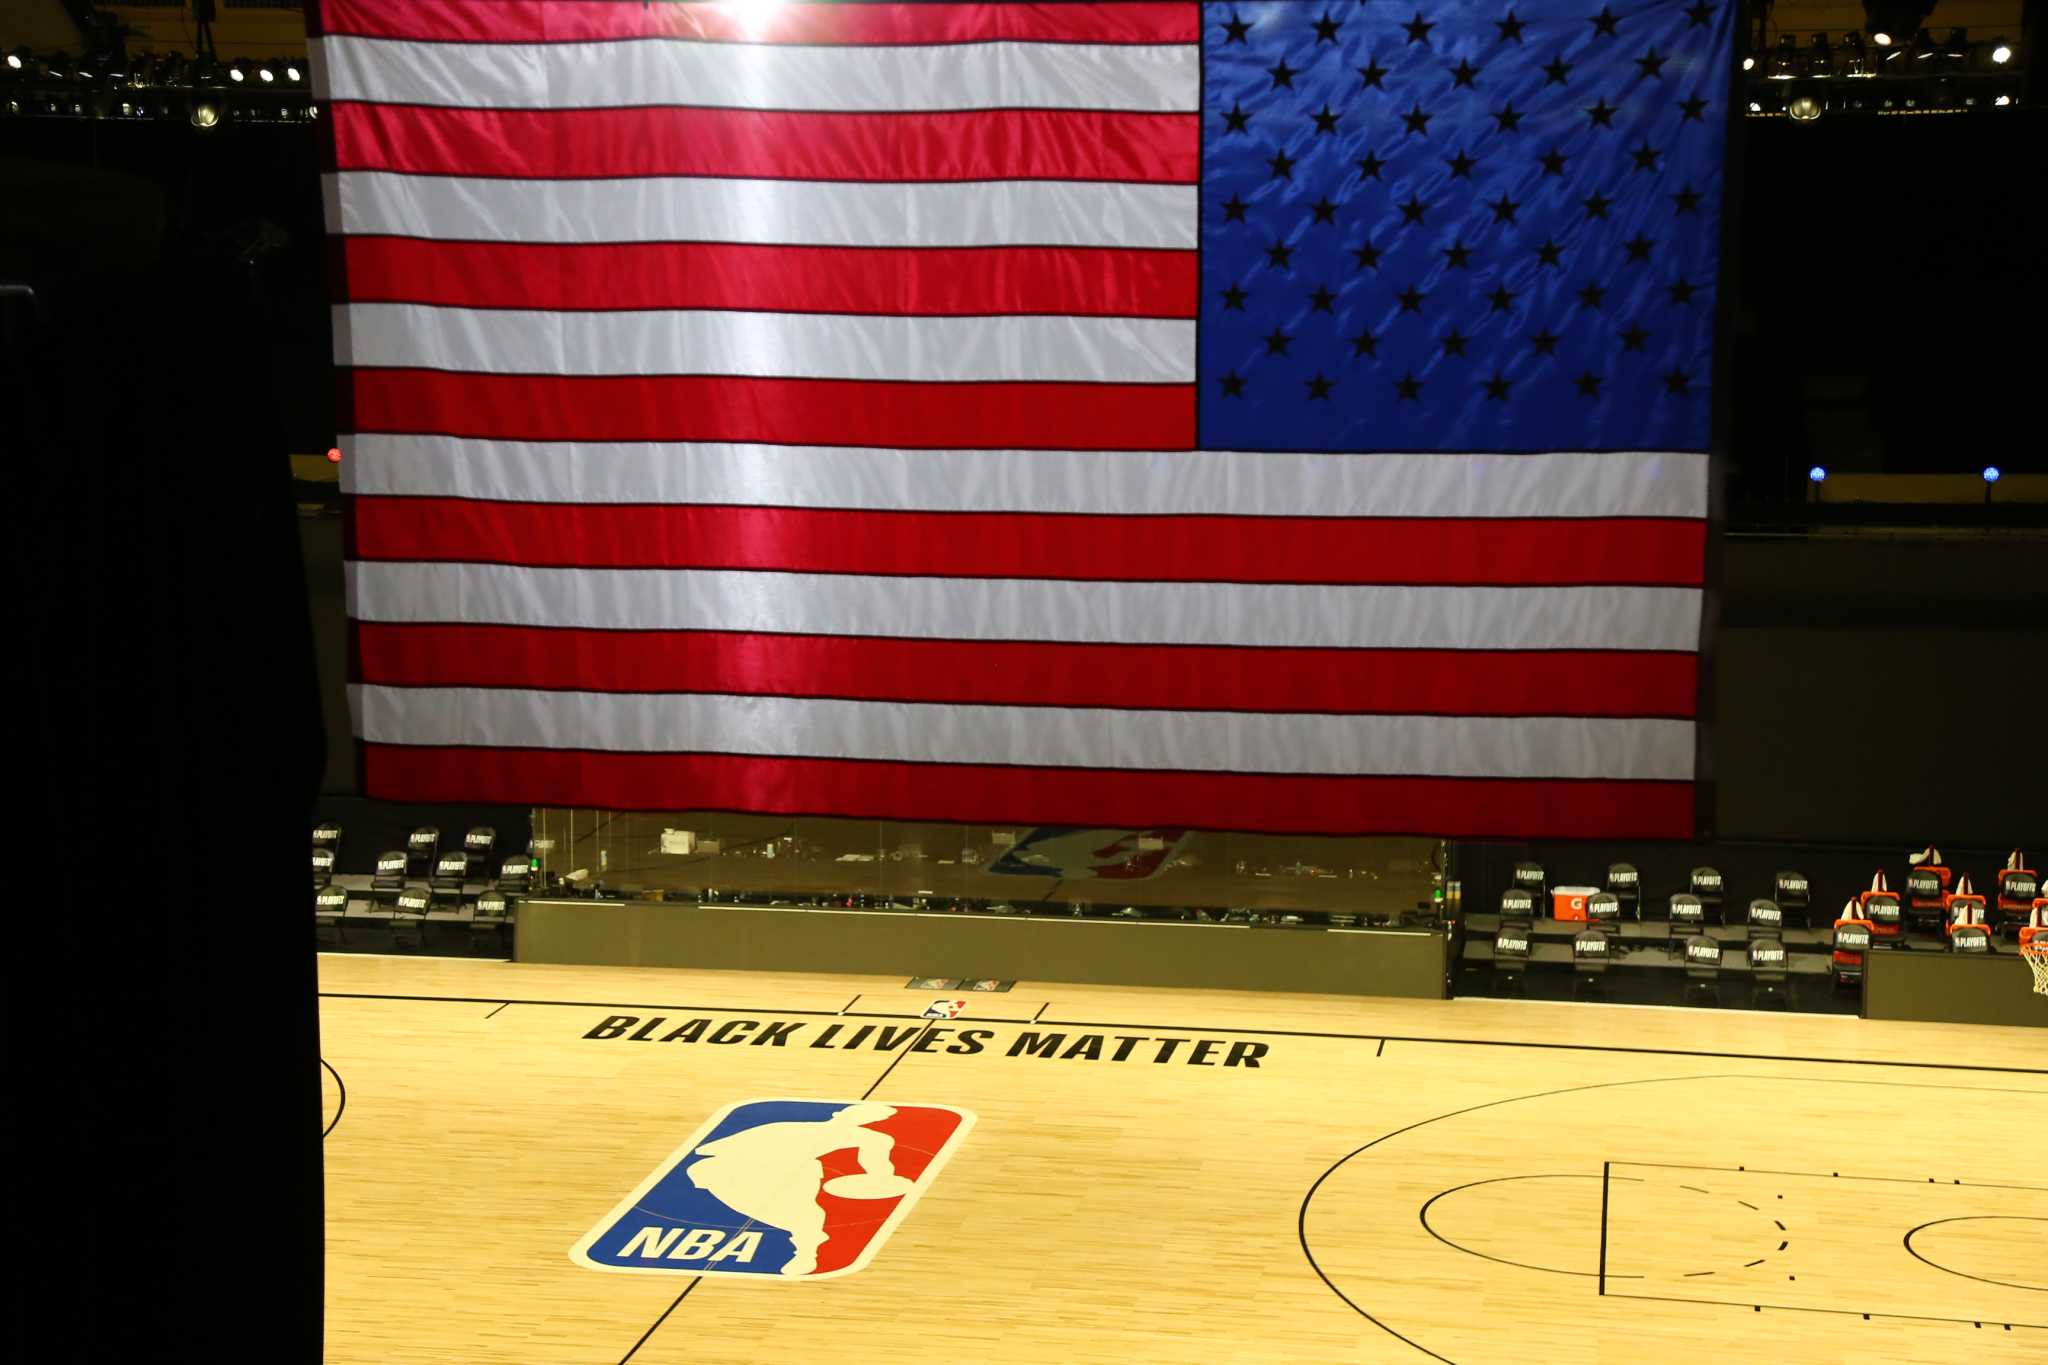 No more waiting: Time for the NBA players to take nuclear option